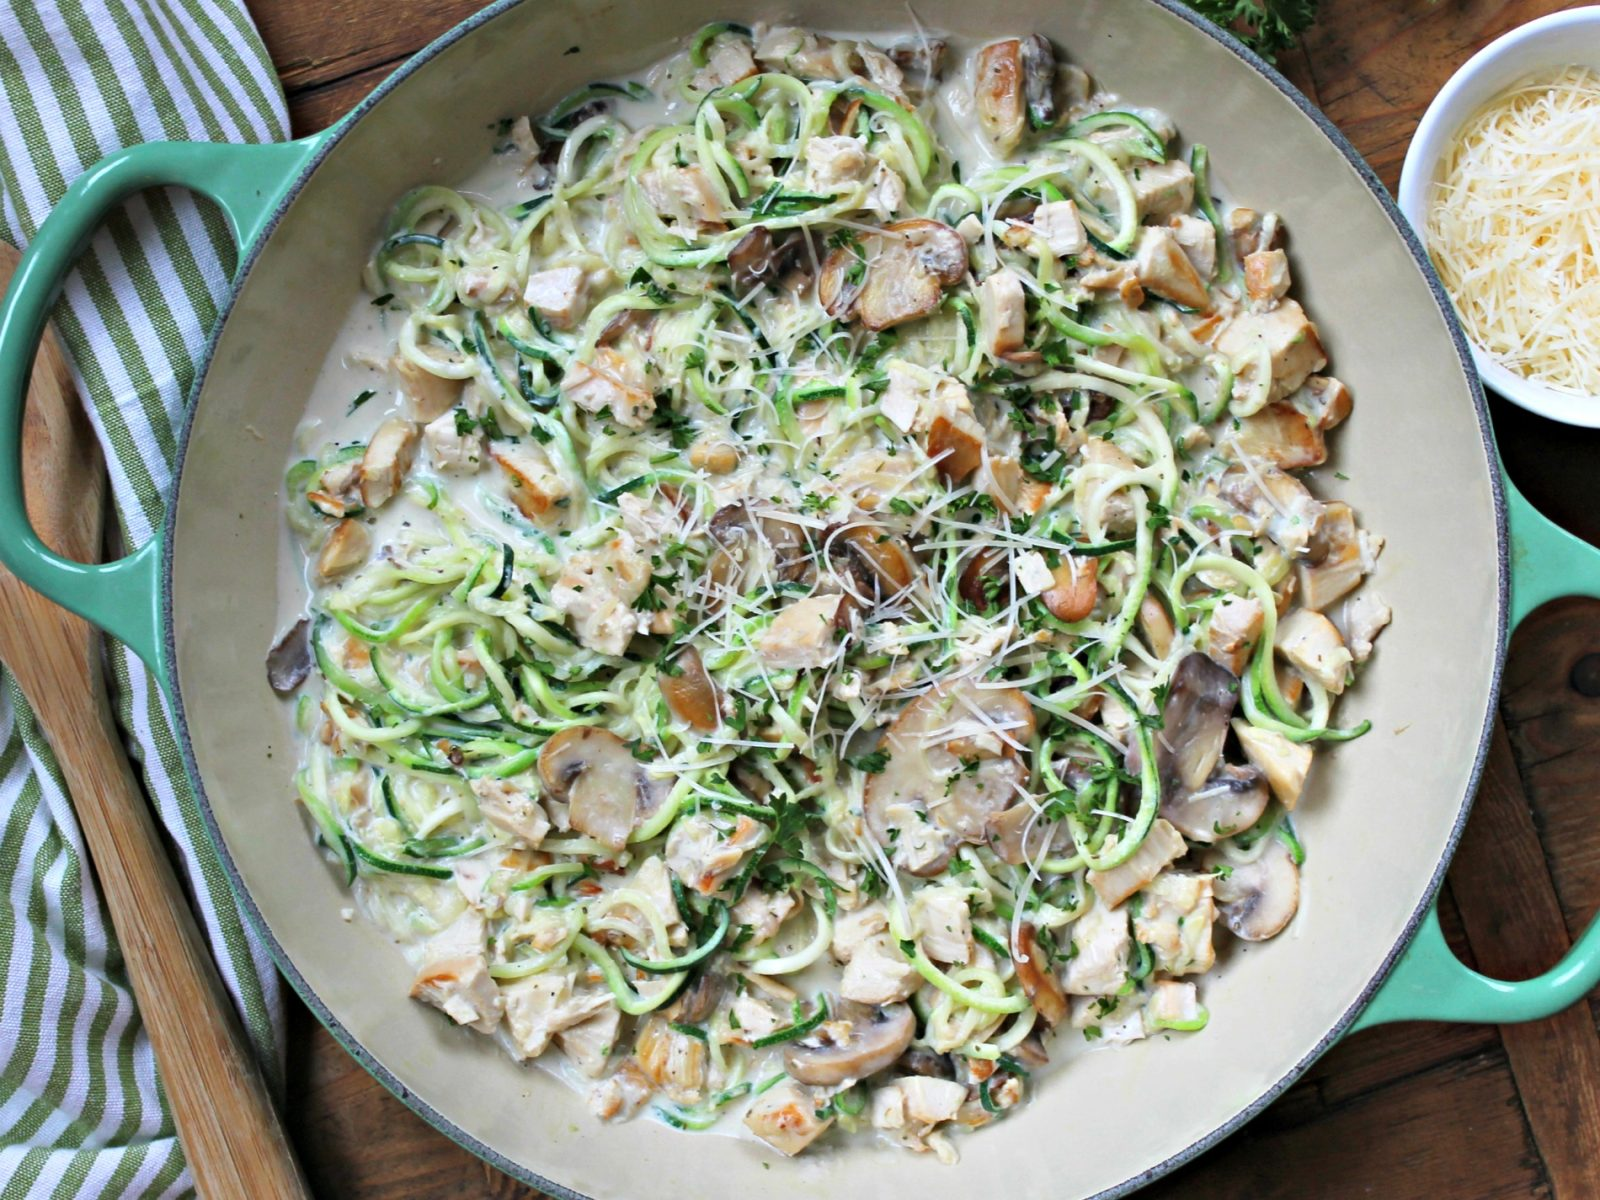 Creamy Mushroom Pork & Zoodles - Get Everything You Need At Publix (+ Look For An Arla Sampling This Weekend) on I Heart Publix 1